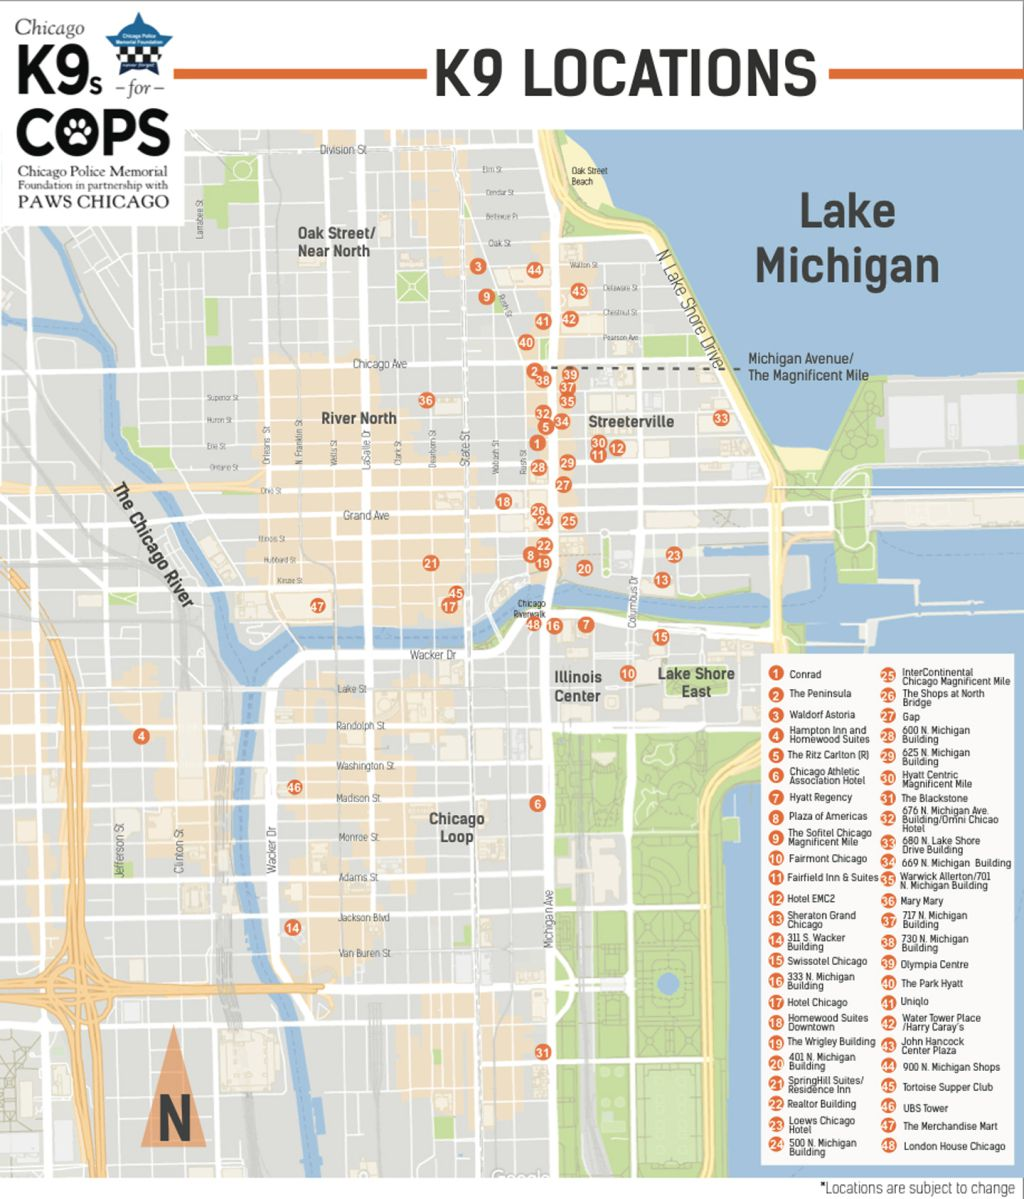 Magnificant Mile's new unofficial mascot: the canine cop ... on mile square park map, wrigley field map, graceland cemetery map, michigan avenue map, miracle mile wyoming map, state street map, south side map, shedd aquarium map, michigan mile marker map, grant park map, moody mile map, chicago mag mile map, miracle mile shops map, madison street map, millennium park map, merchandise mart map, main street map, royal mile map, navy pier map, miracle mile fishing map,